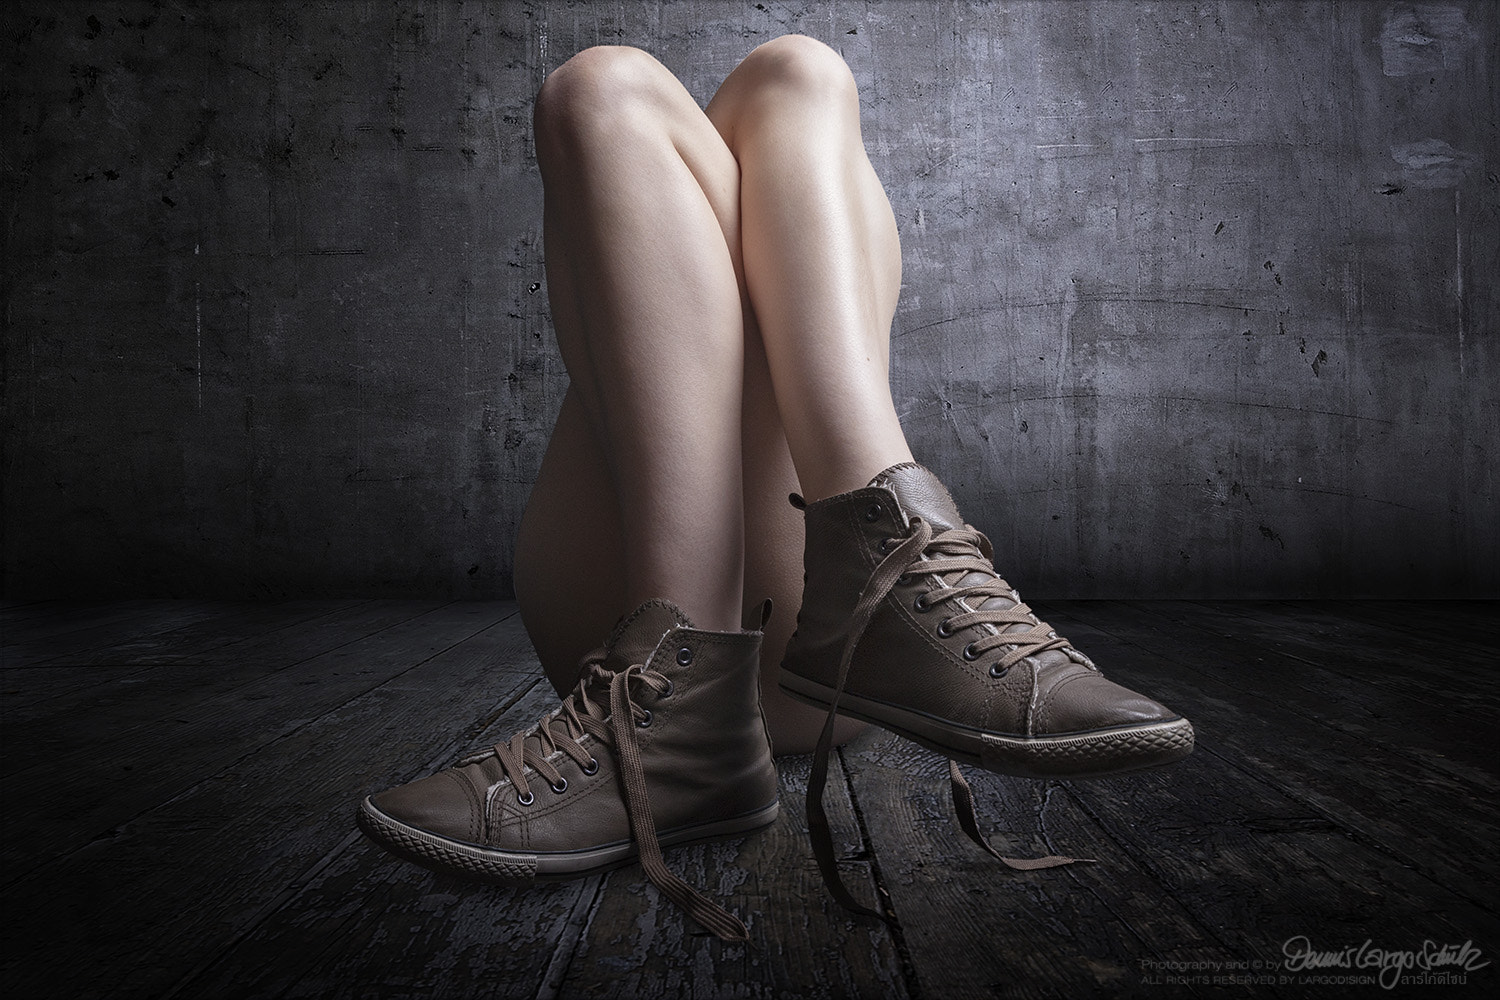 Photograph sNeaKeRs by Dennis Largo Schulz on 500px